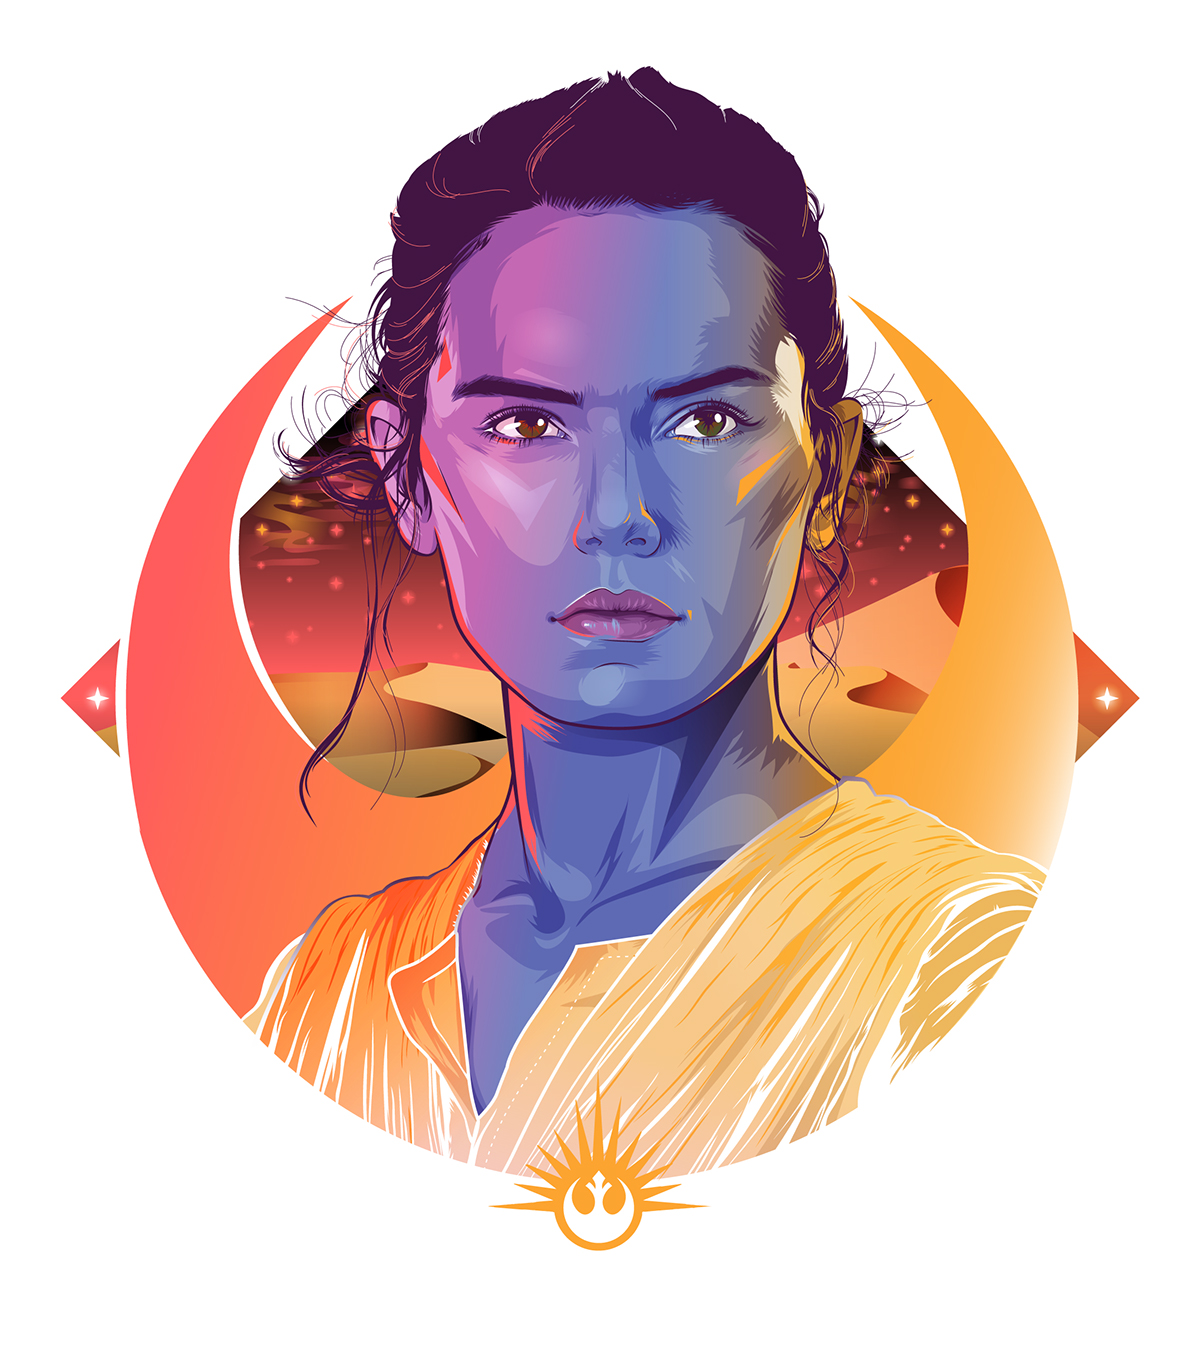 Star Wars: The Rise of Skywalker Review – A Great Start to a New Generation